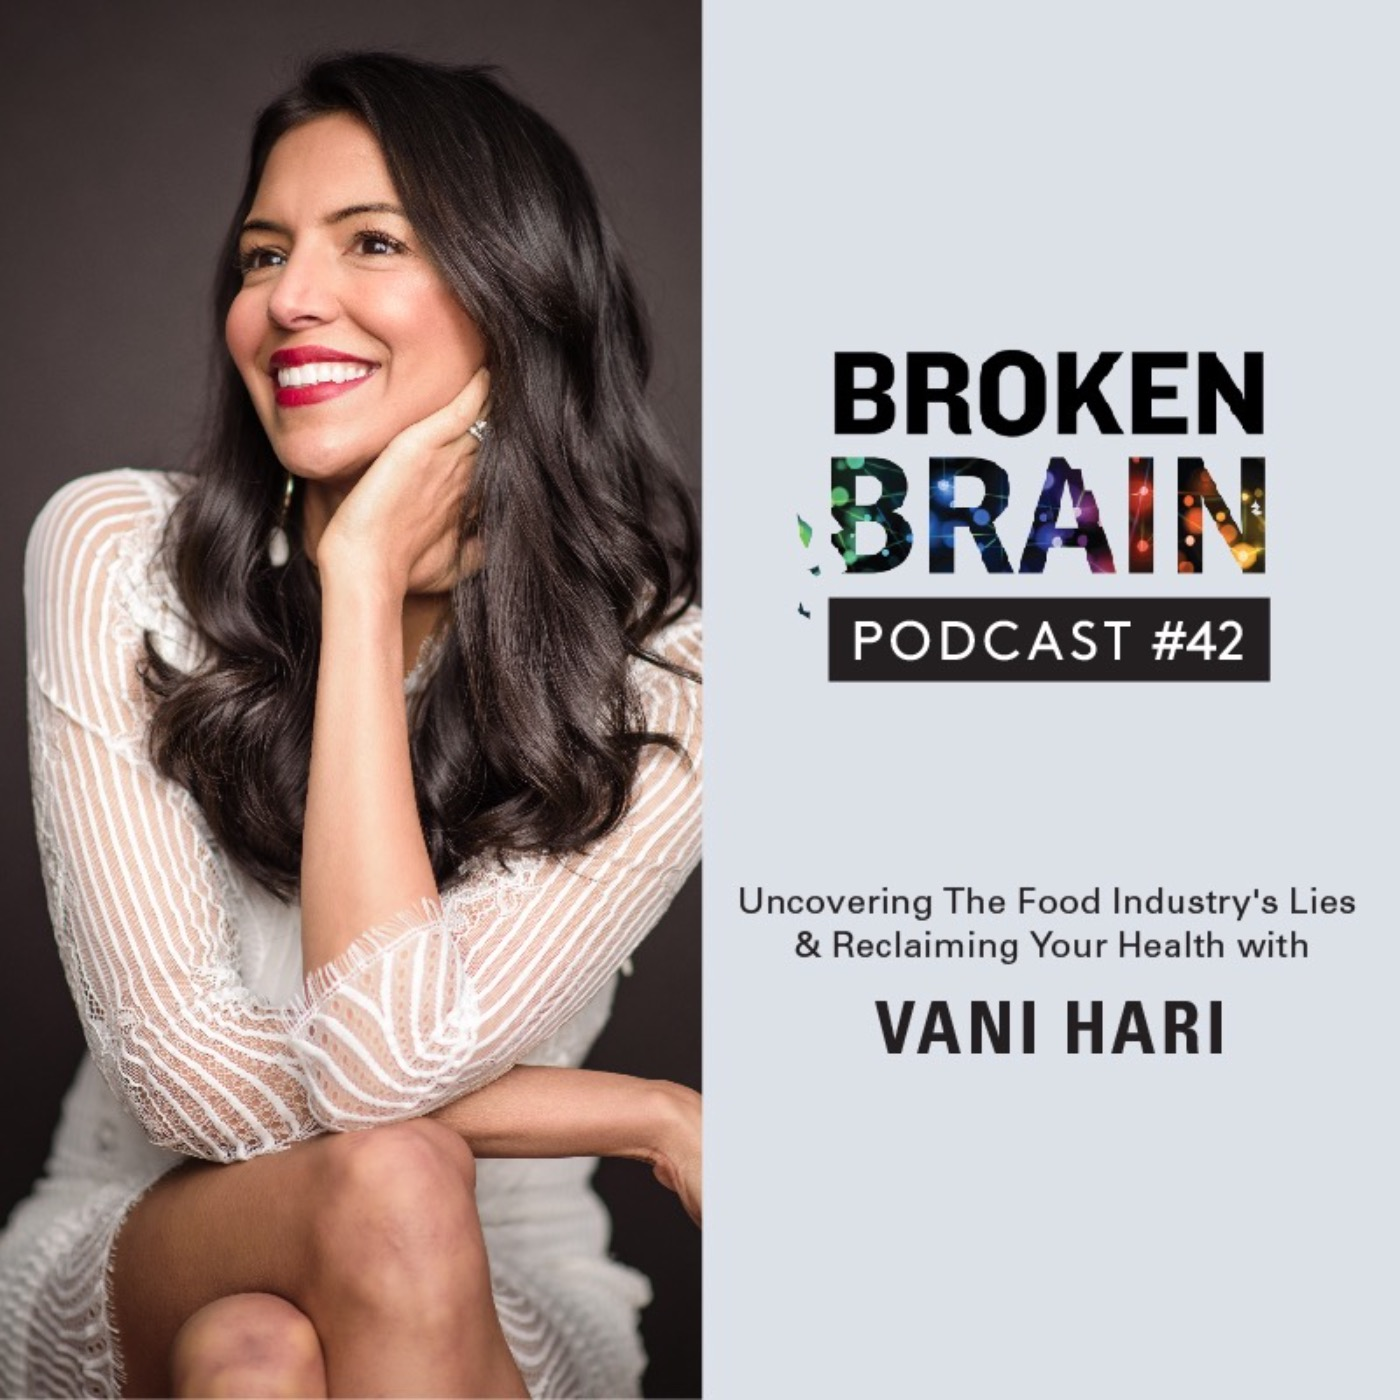 #42: Uncovering The Food Industry's Lies and Reclaiming Your Health with Vani Hari